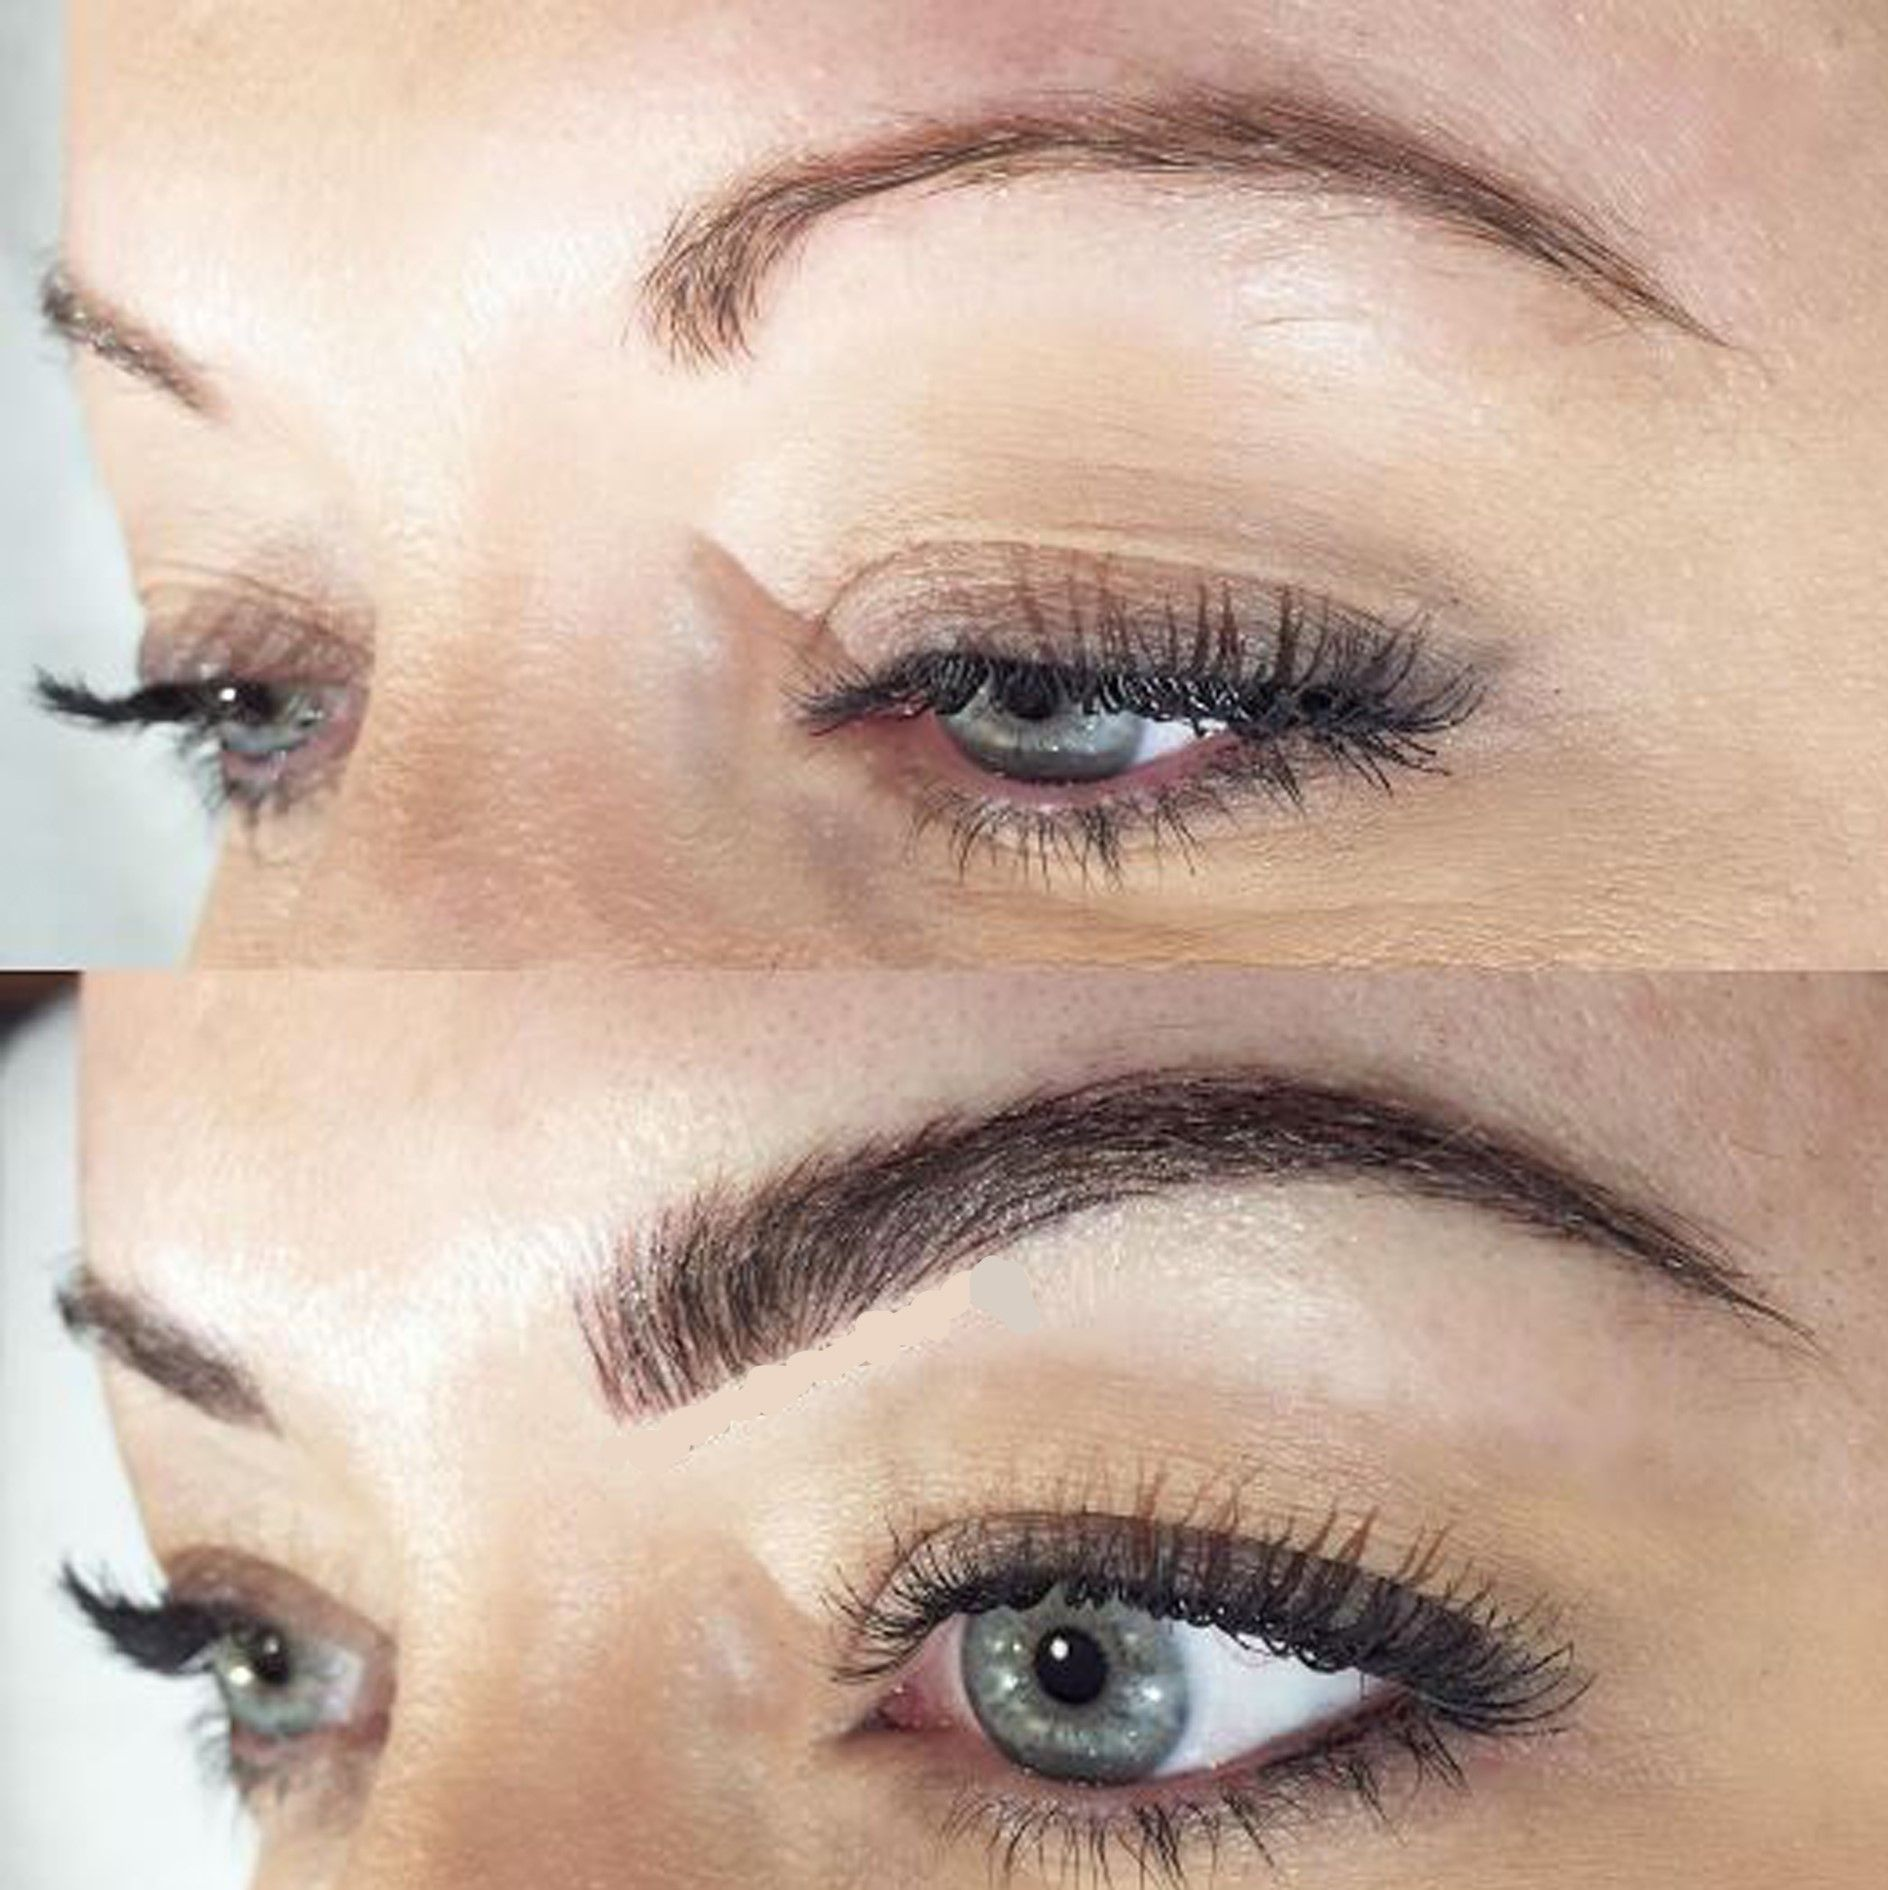 microblading eyebrows | Microblading Eyebrows Aftercare Related ...